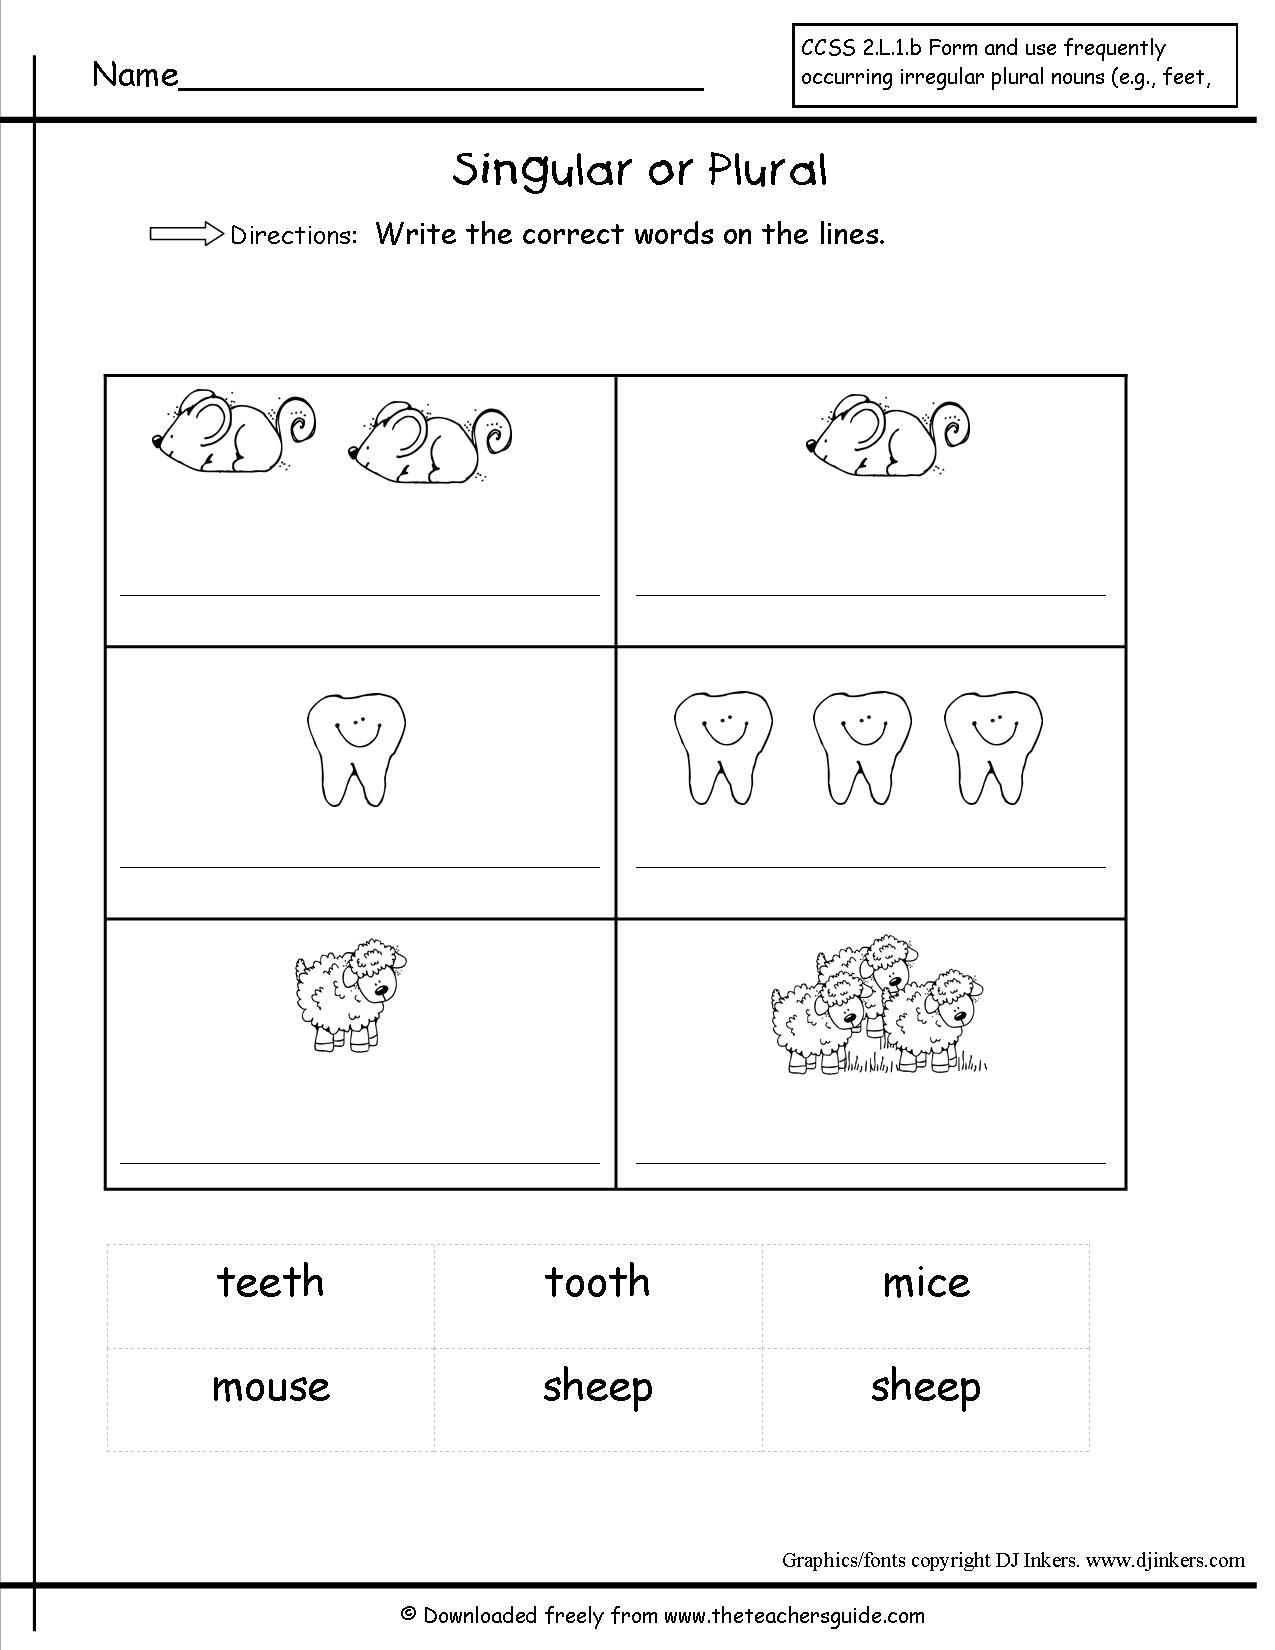 Irregular Plural Nouns Worksheet